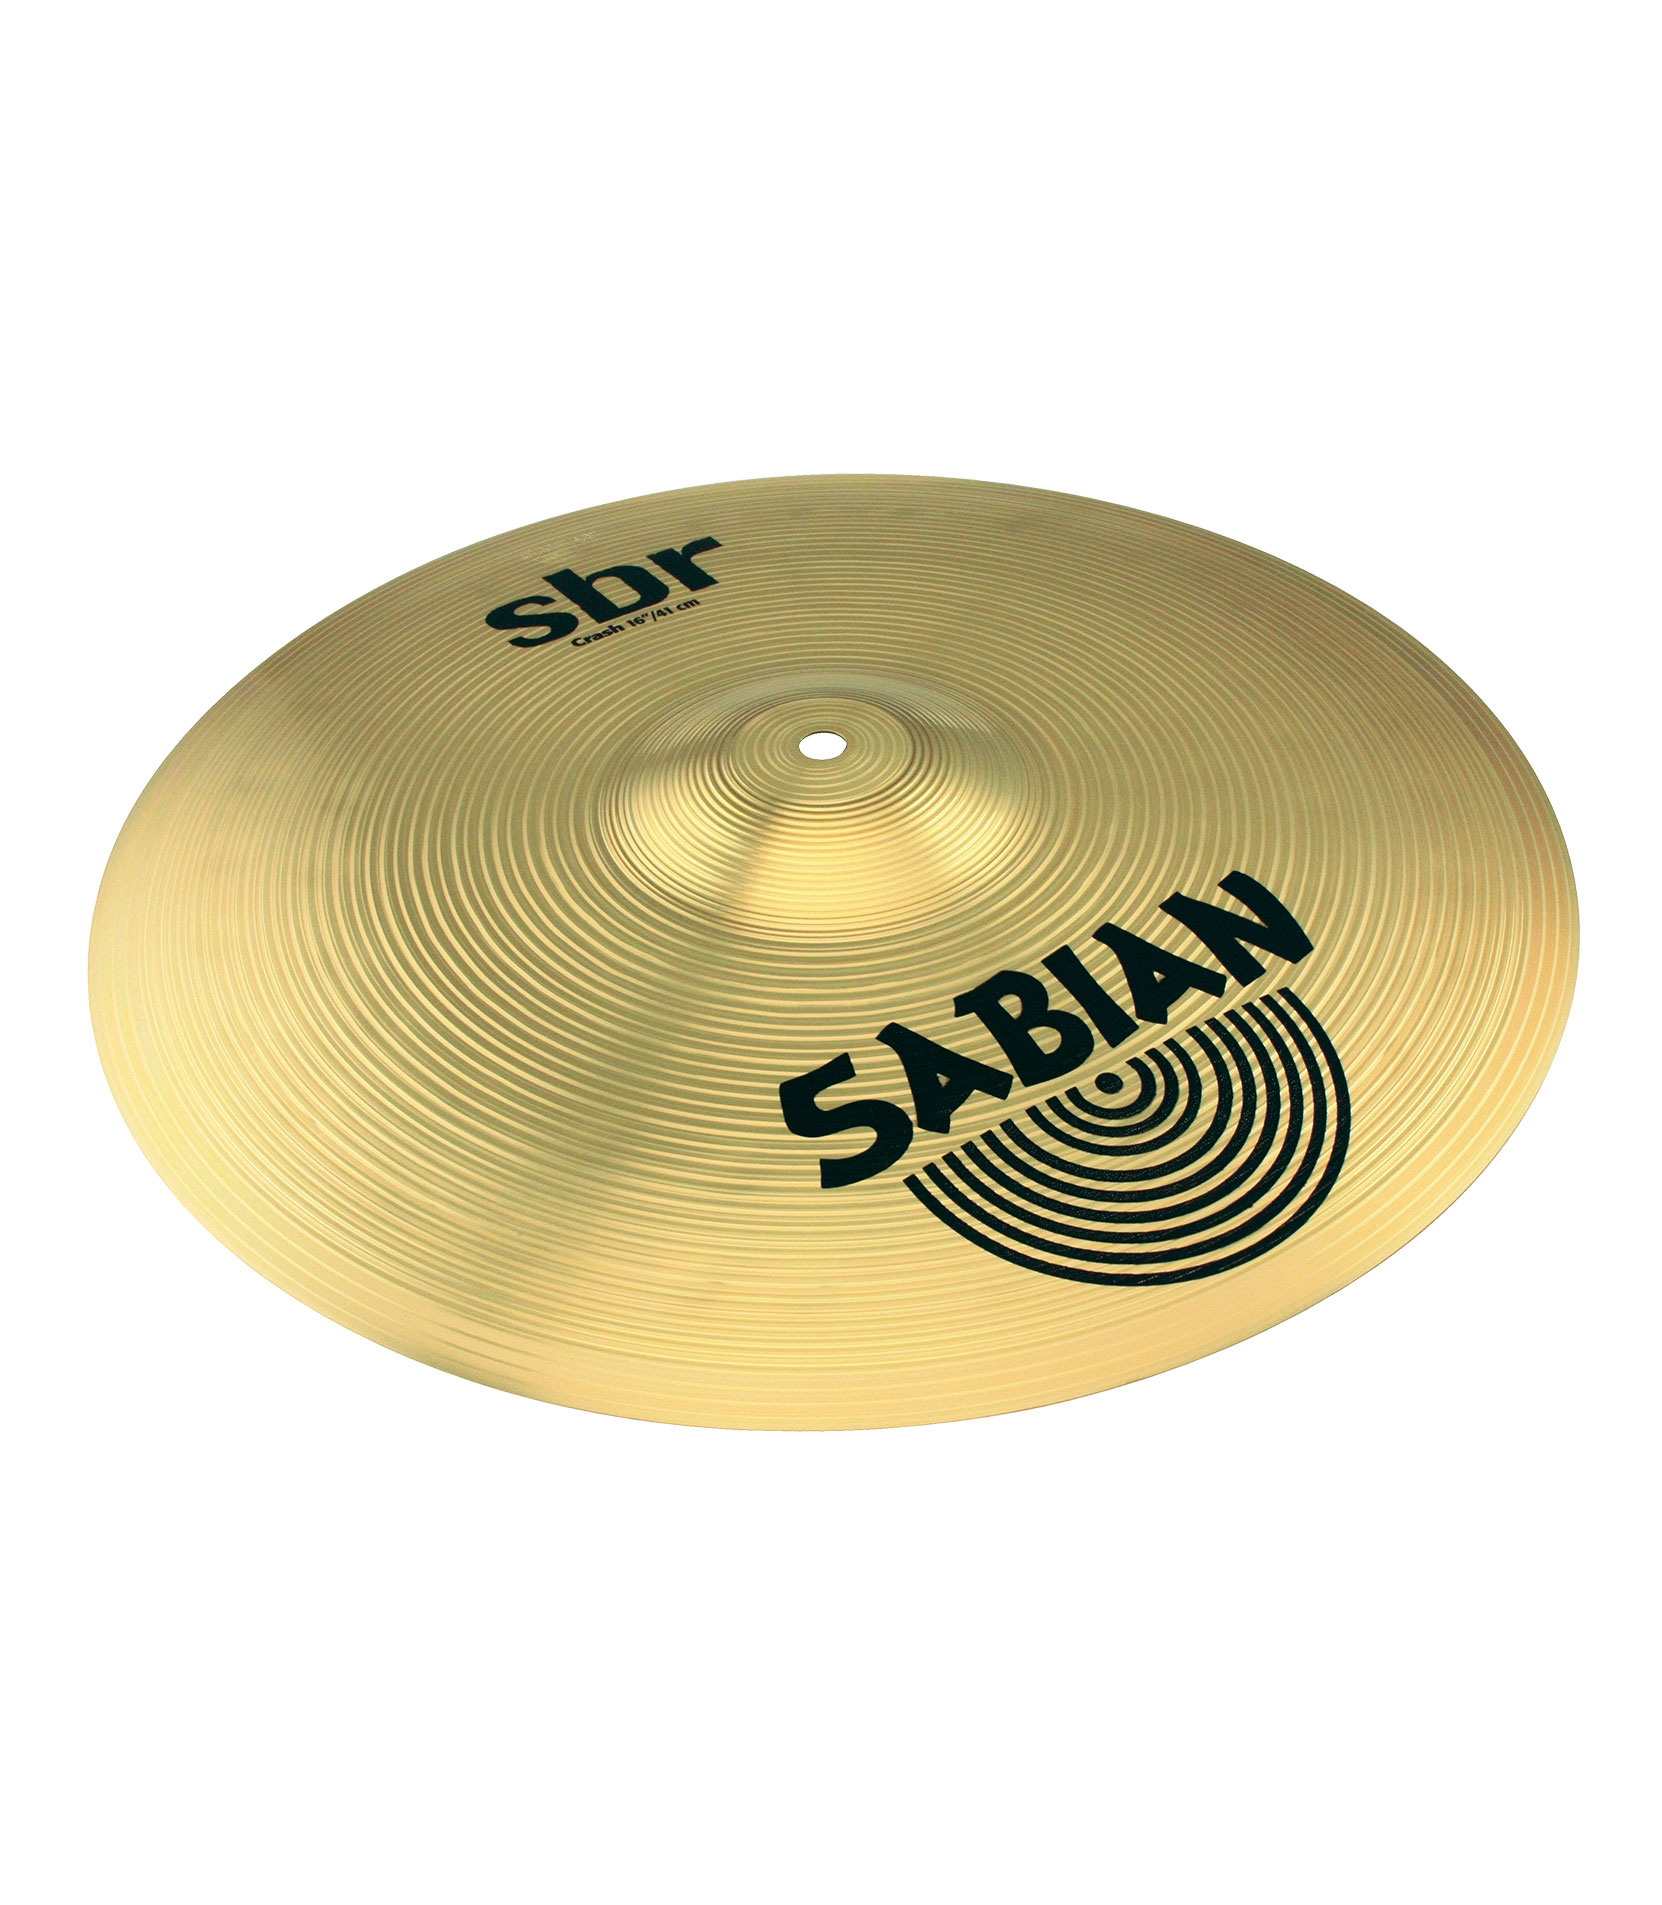 Sabian - 16 SBR Crash